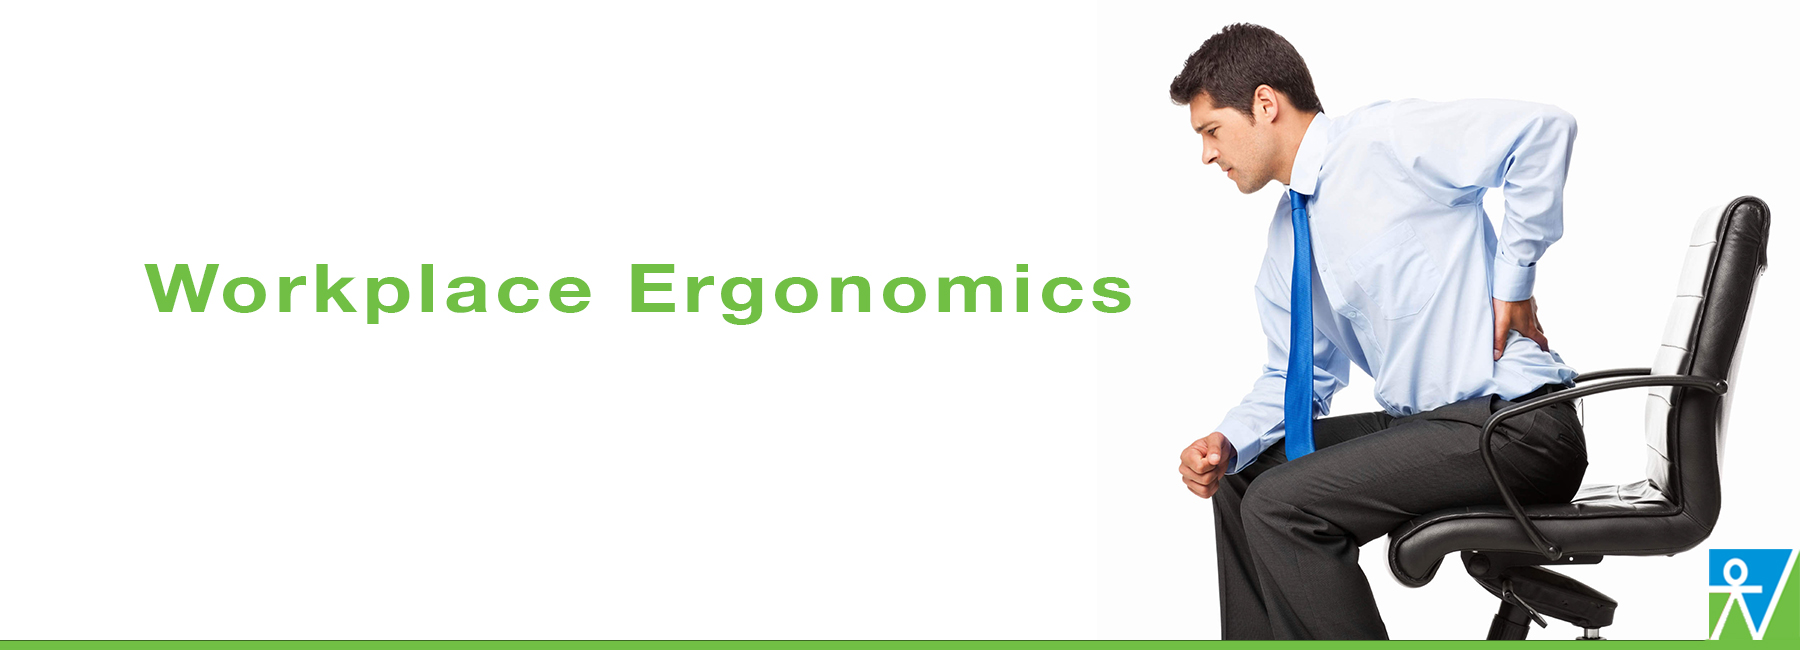 BHS believes that utilising practical ergonomic strategies including training efficiently and safely    manages how people work in their environment Managing ergonomics in the workplace is about reducing risks of ergonomics and manual handling hazards.